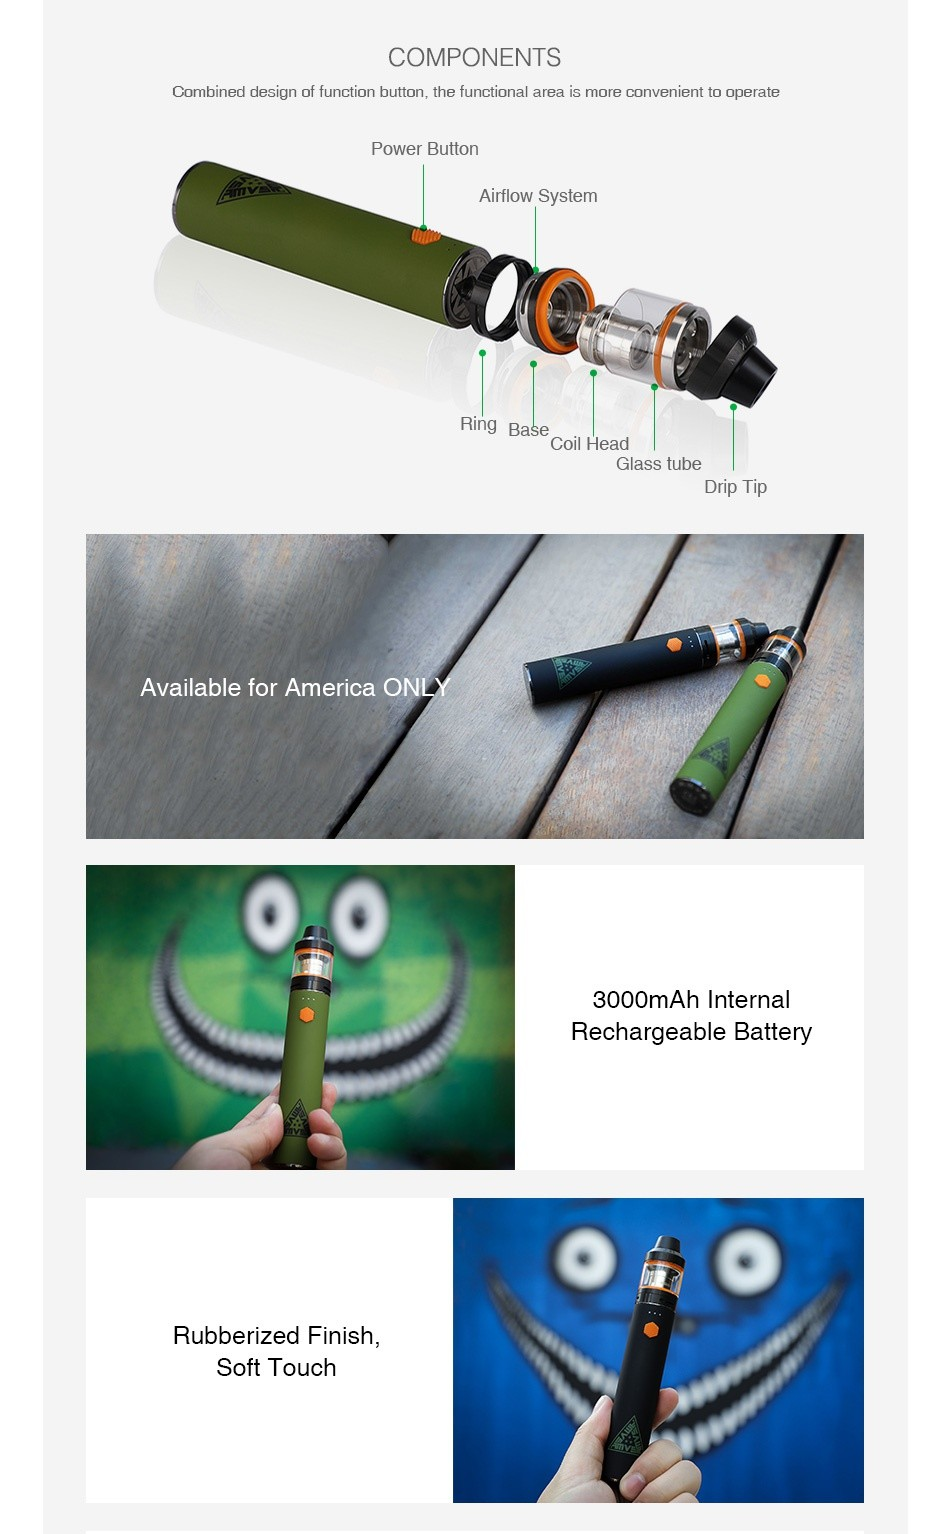 [US ONLY] Innokin AMVS Starter Kit 3000mAh COMPONENTS Combined design of function button  the functional area is more convenient to operate Power button Airflow System Base Coil head Glass tube Drip I ip Available for America ONL 3000mAh Internal Rechargeable Battery Rubberized finish Soft touch